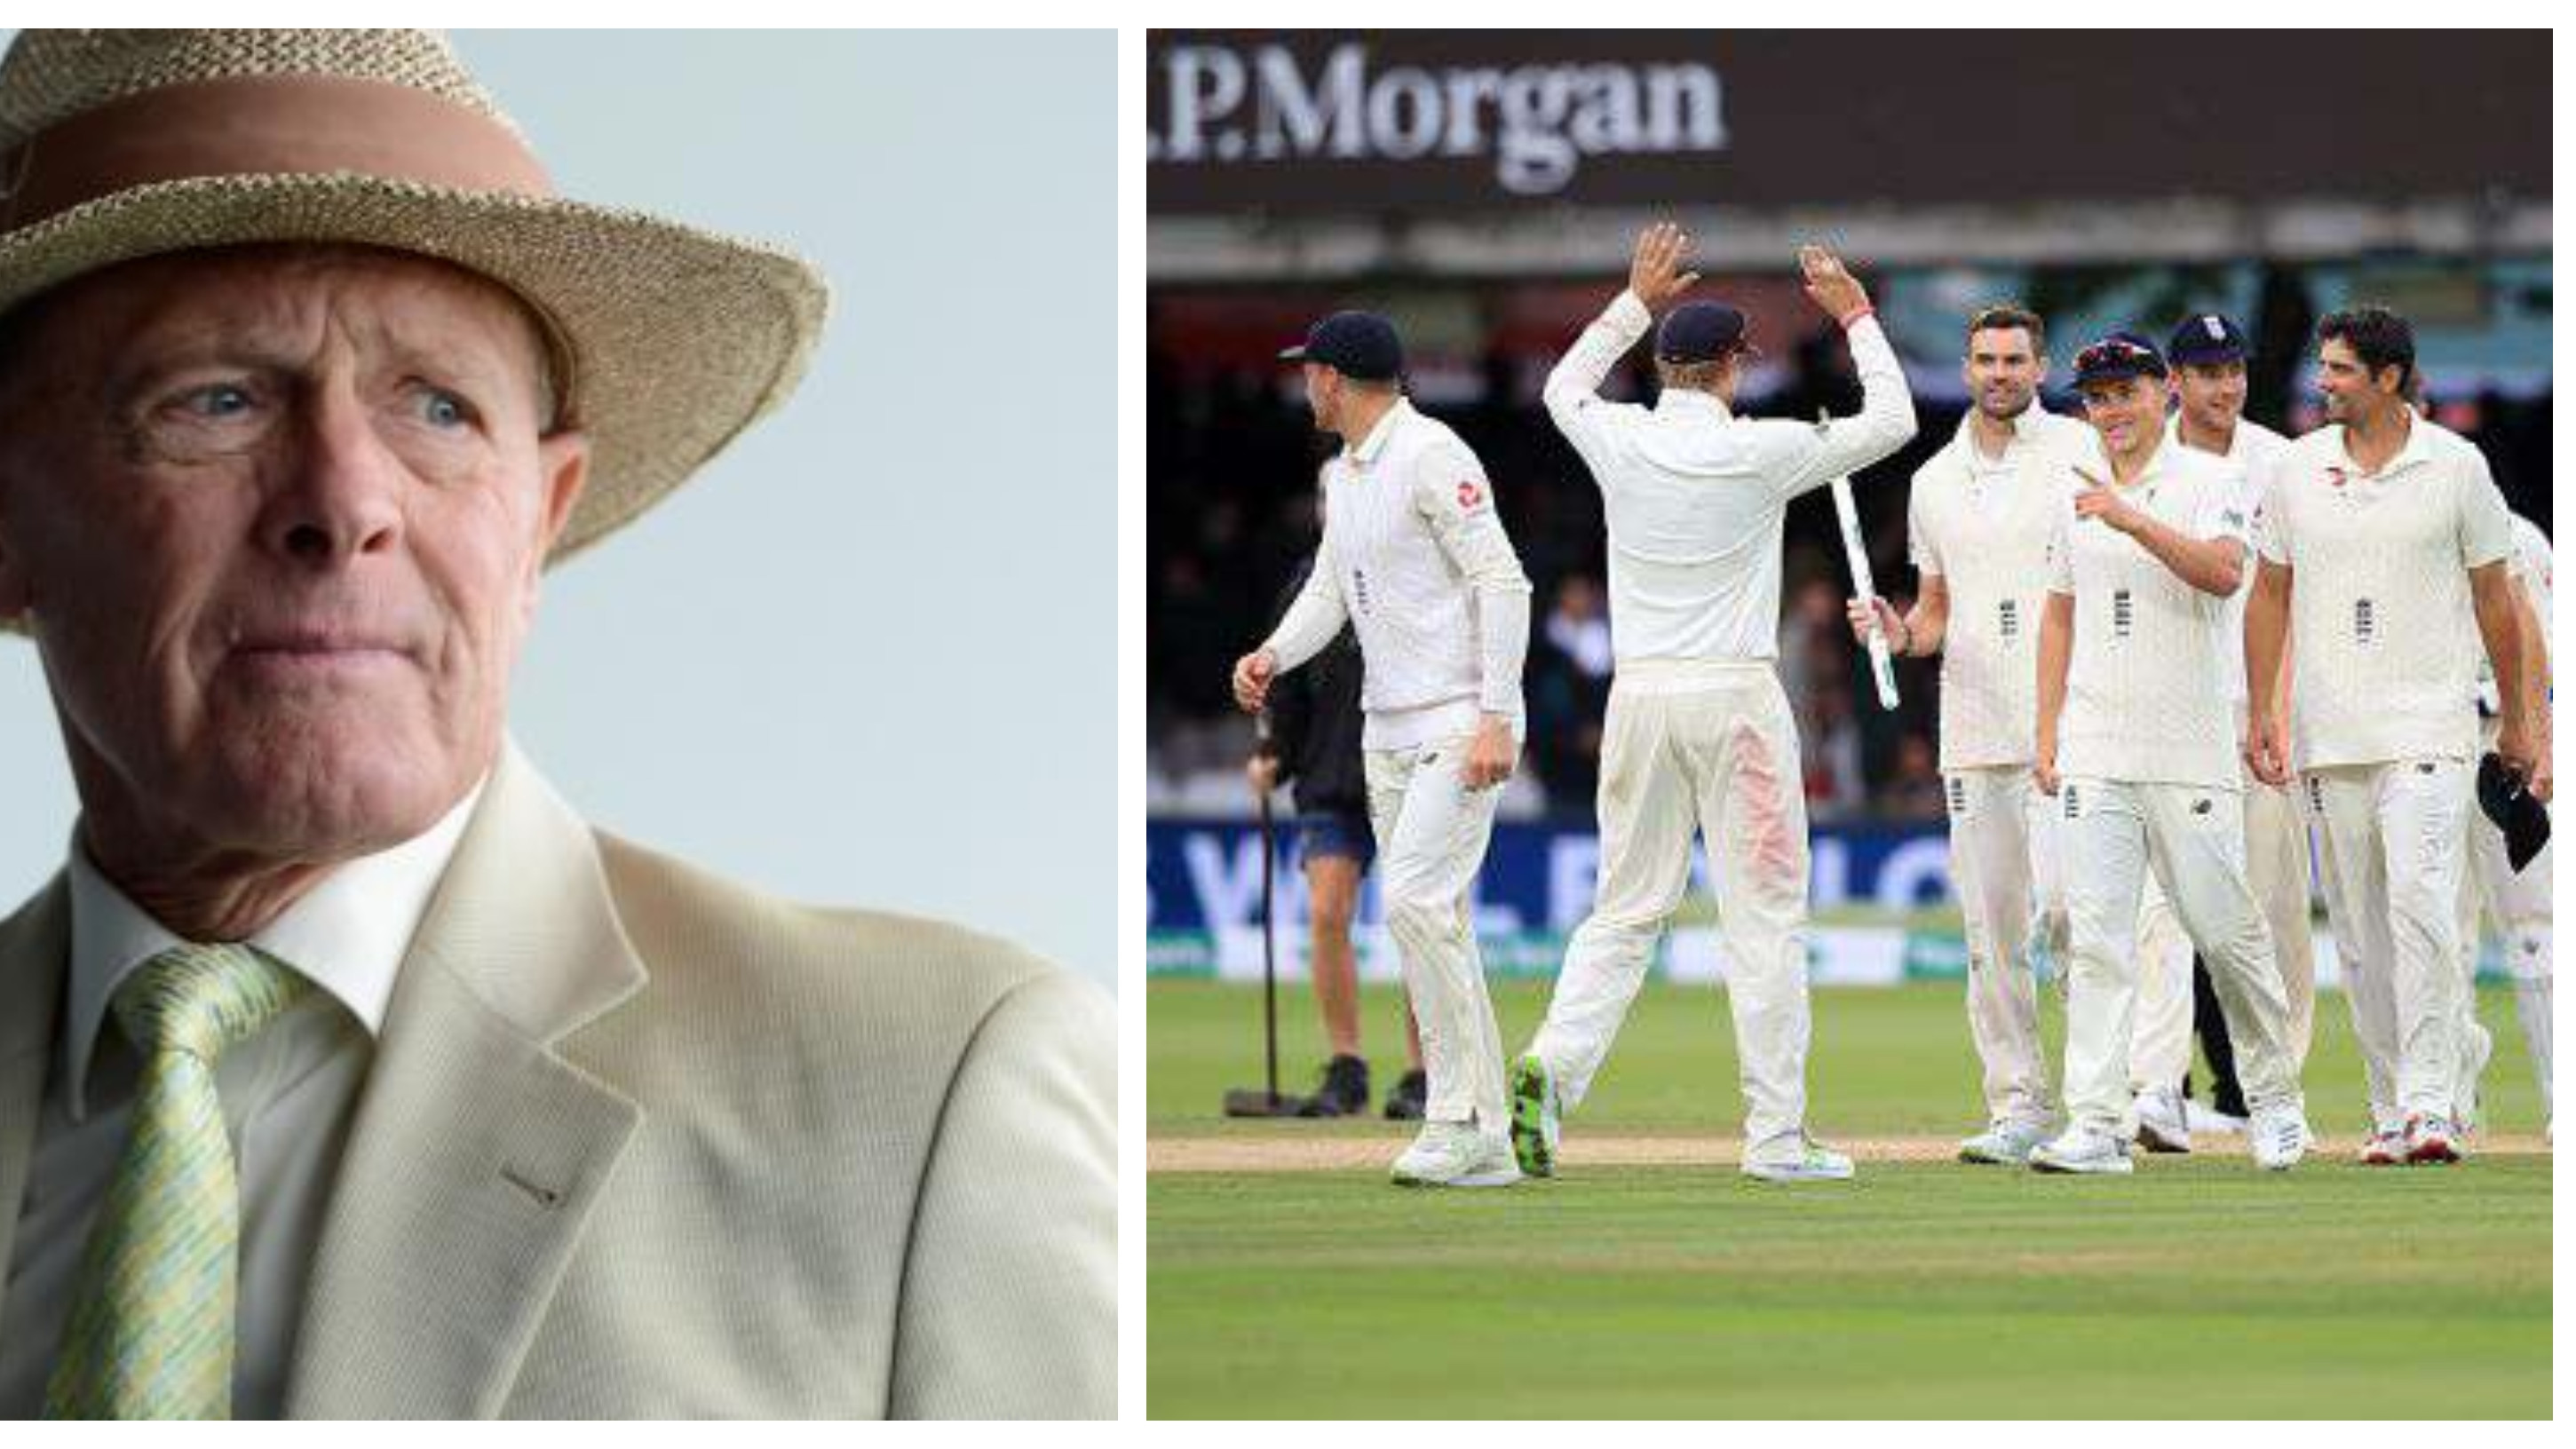 ENG vs IND 2018: England has gone backwards as a team, says Geoffrey Boycott